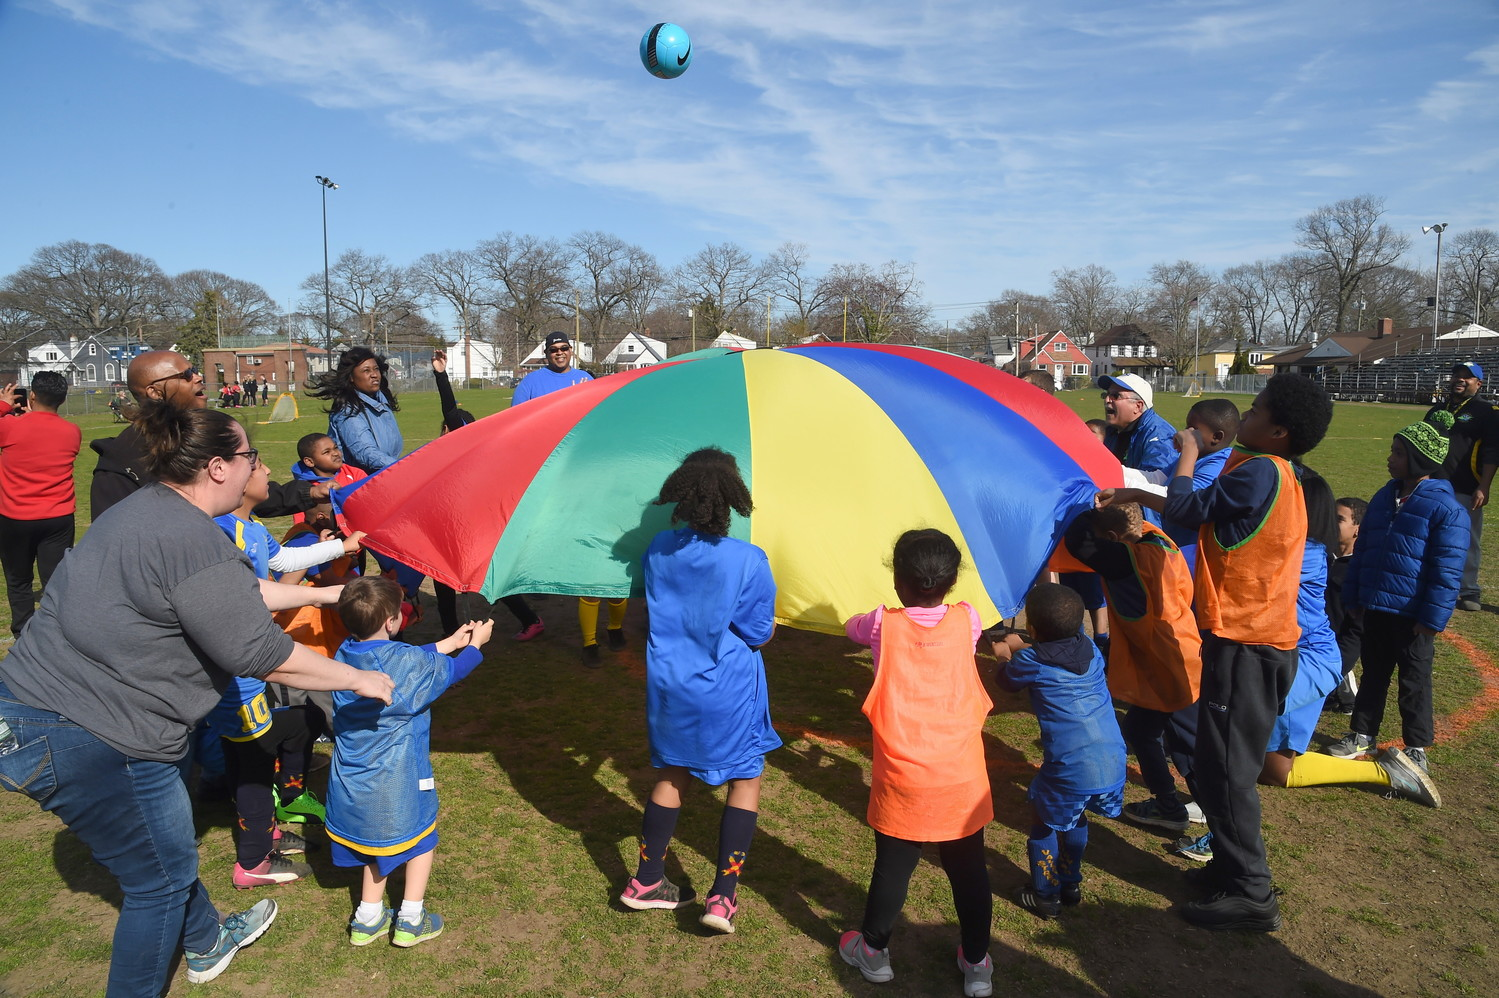 Children and parents used a brightly colored parachute to toss a soccer ball.